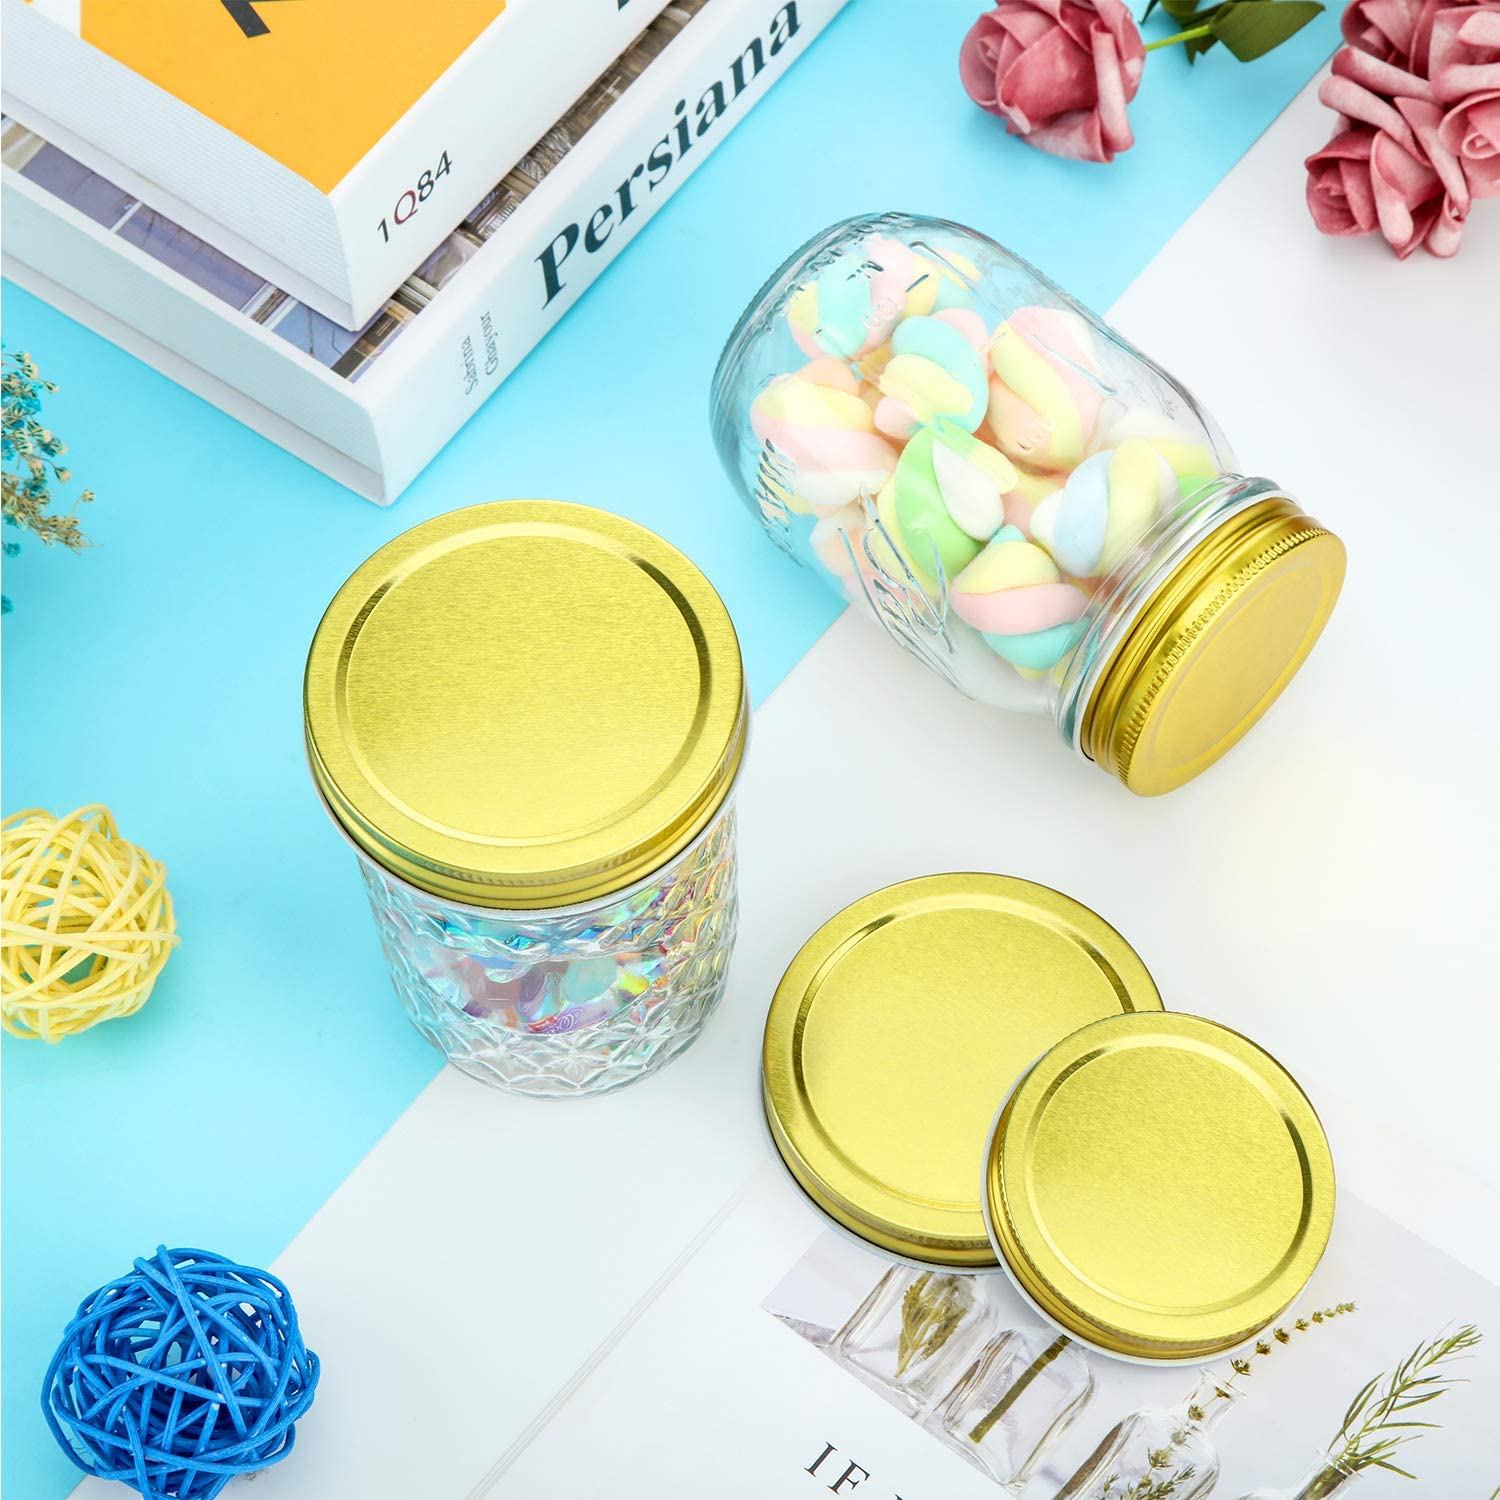 16 Pieces Gold Mason Canning Jar Lids Regular Mouth and Wide Mouth Lids Silicone Seals Leak Proof Secure Mason Storage Solid Caps